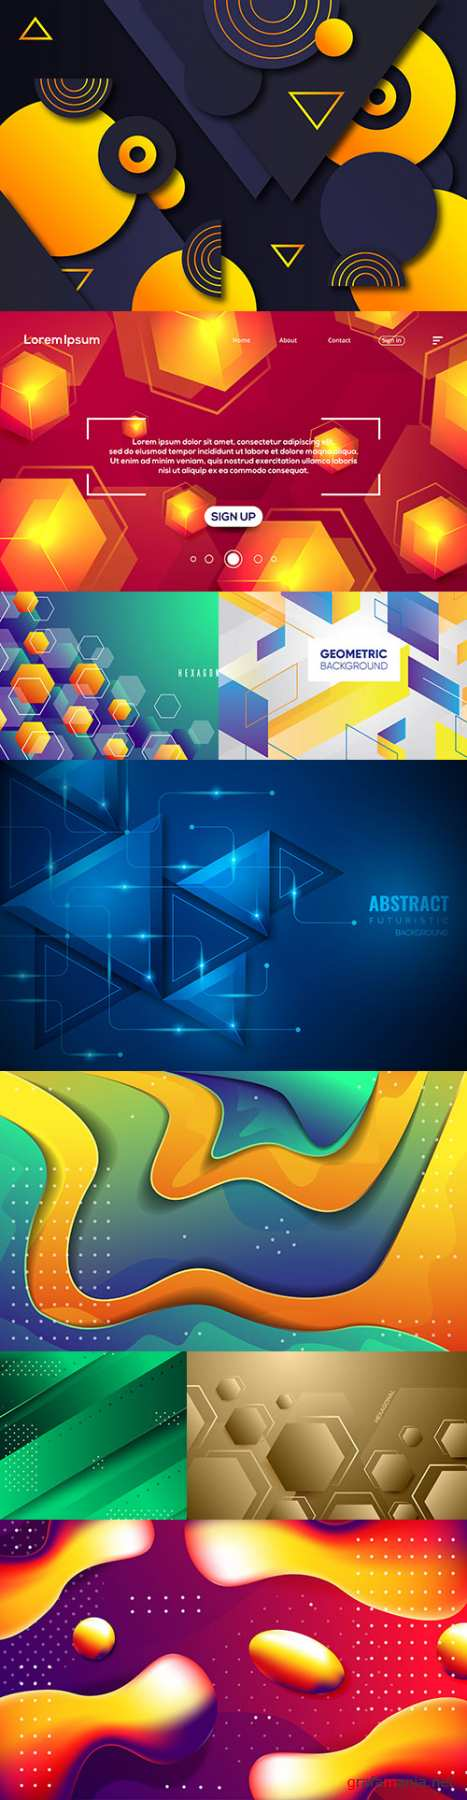 Abstract background and design decorative element